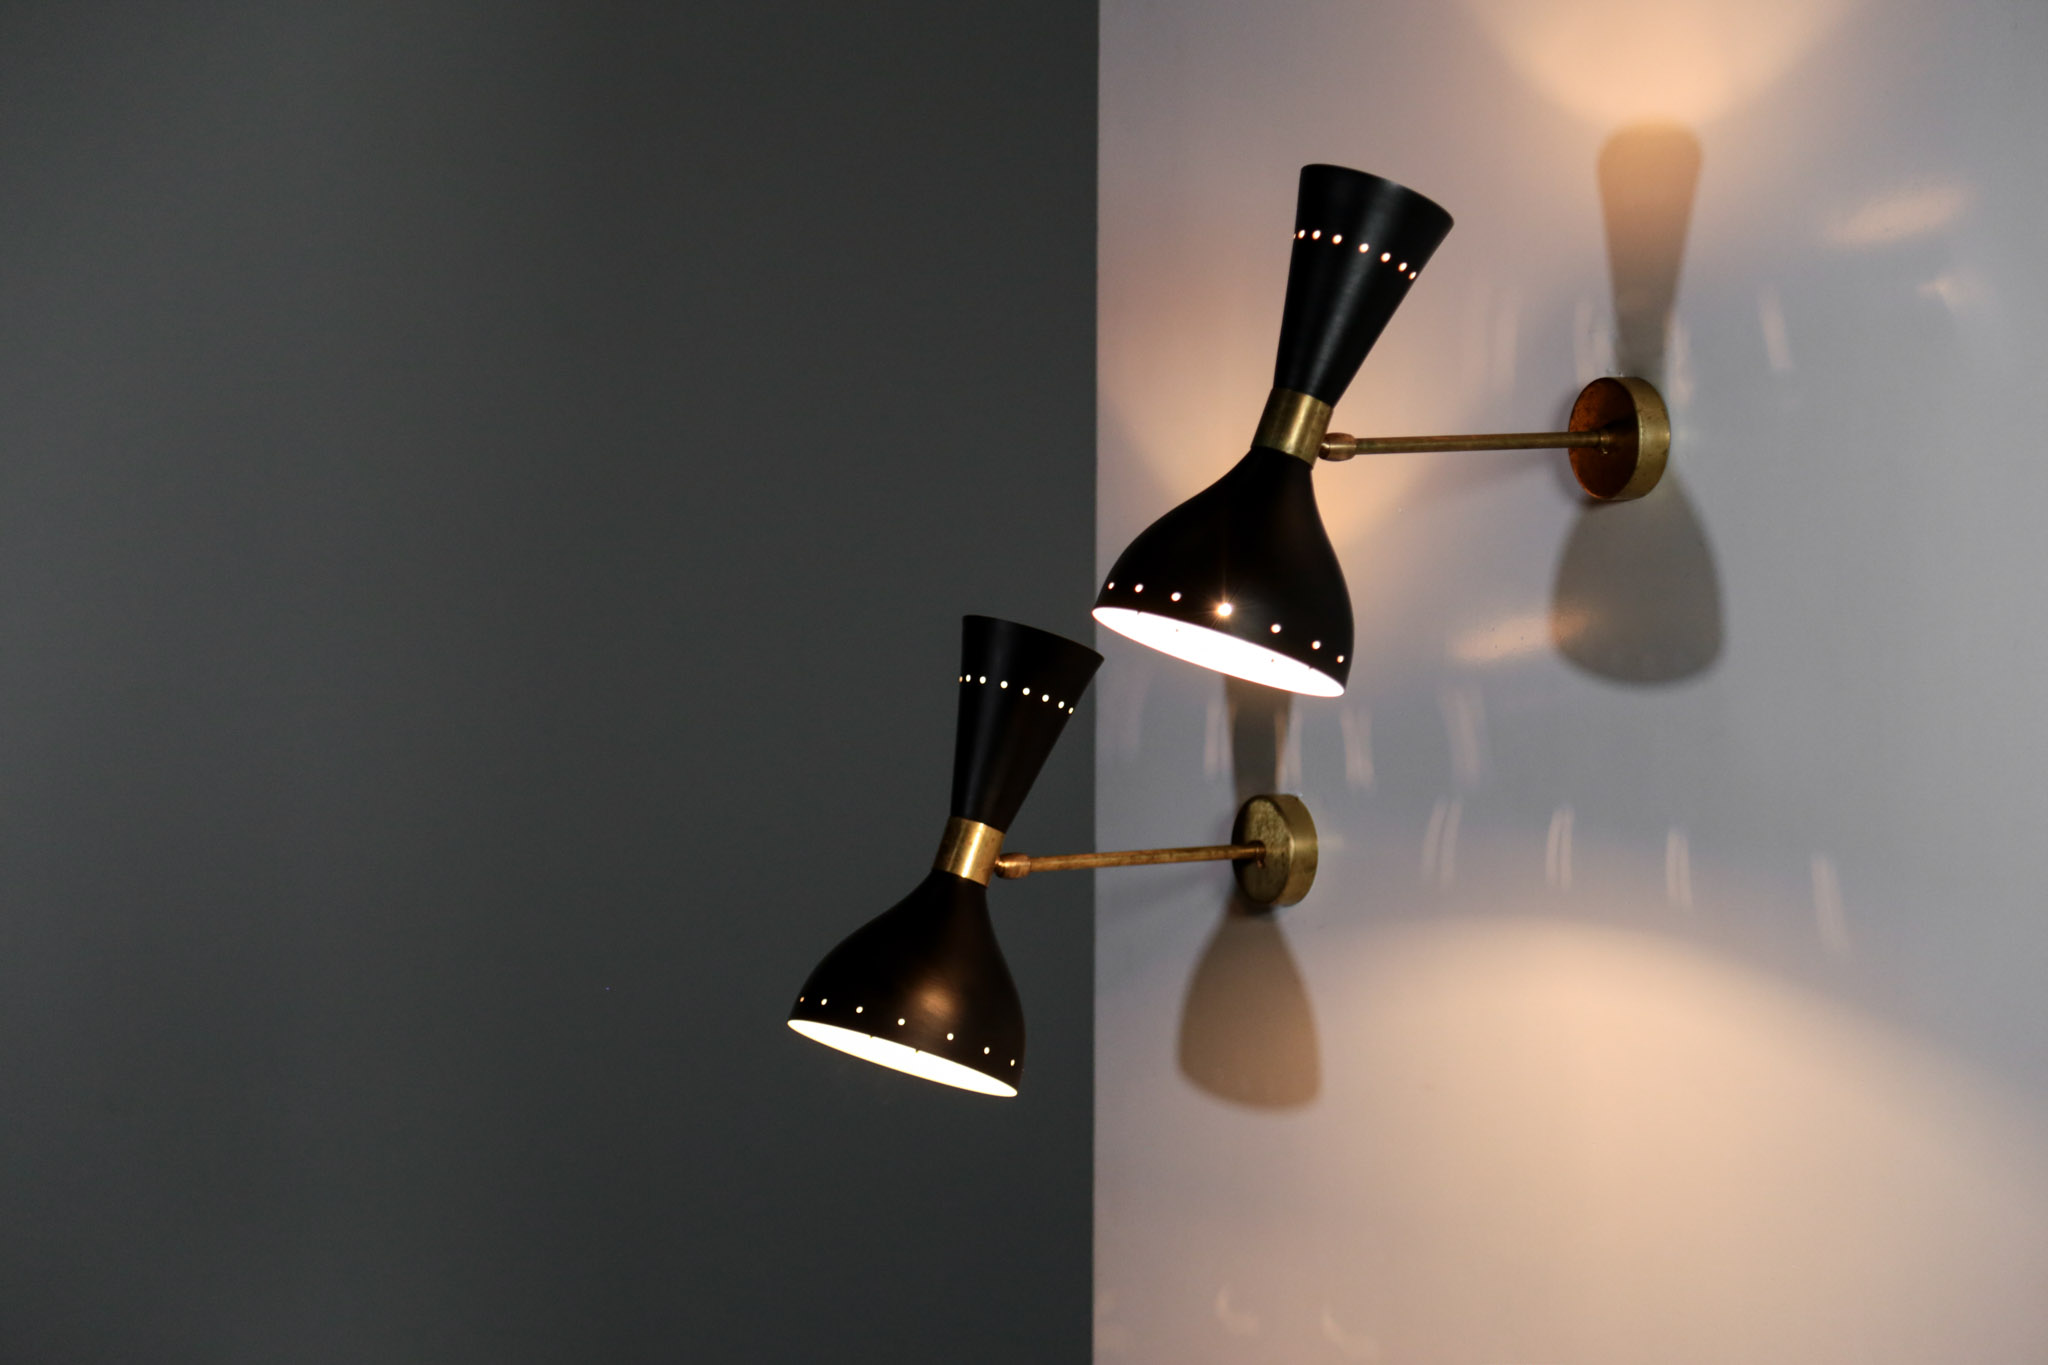 Pair of italian modern diabolo sconces stilnovo style wall light